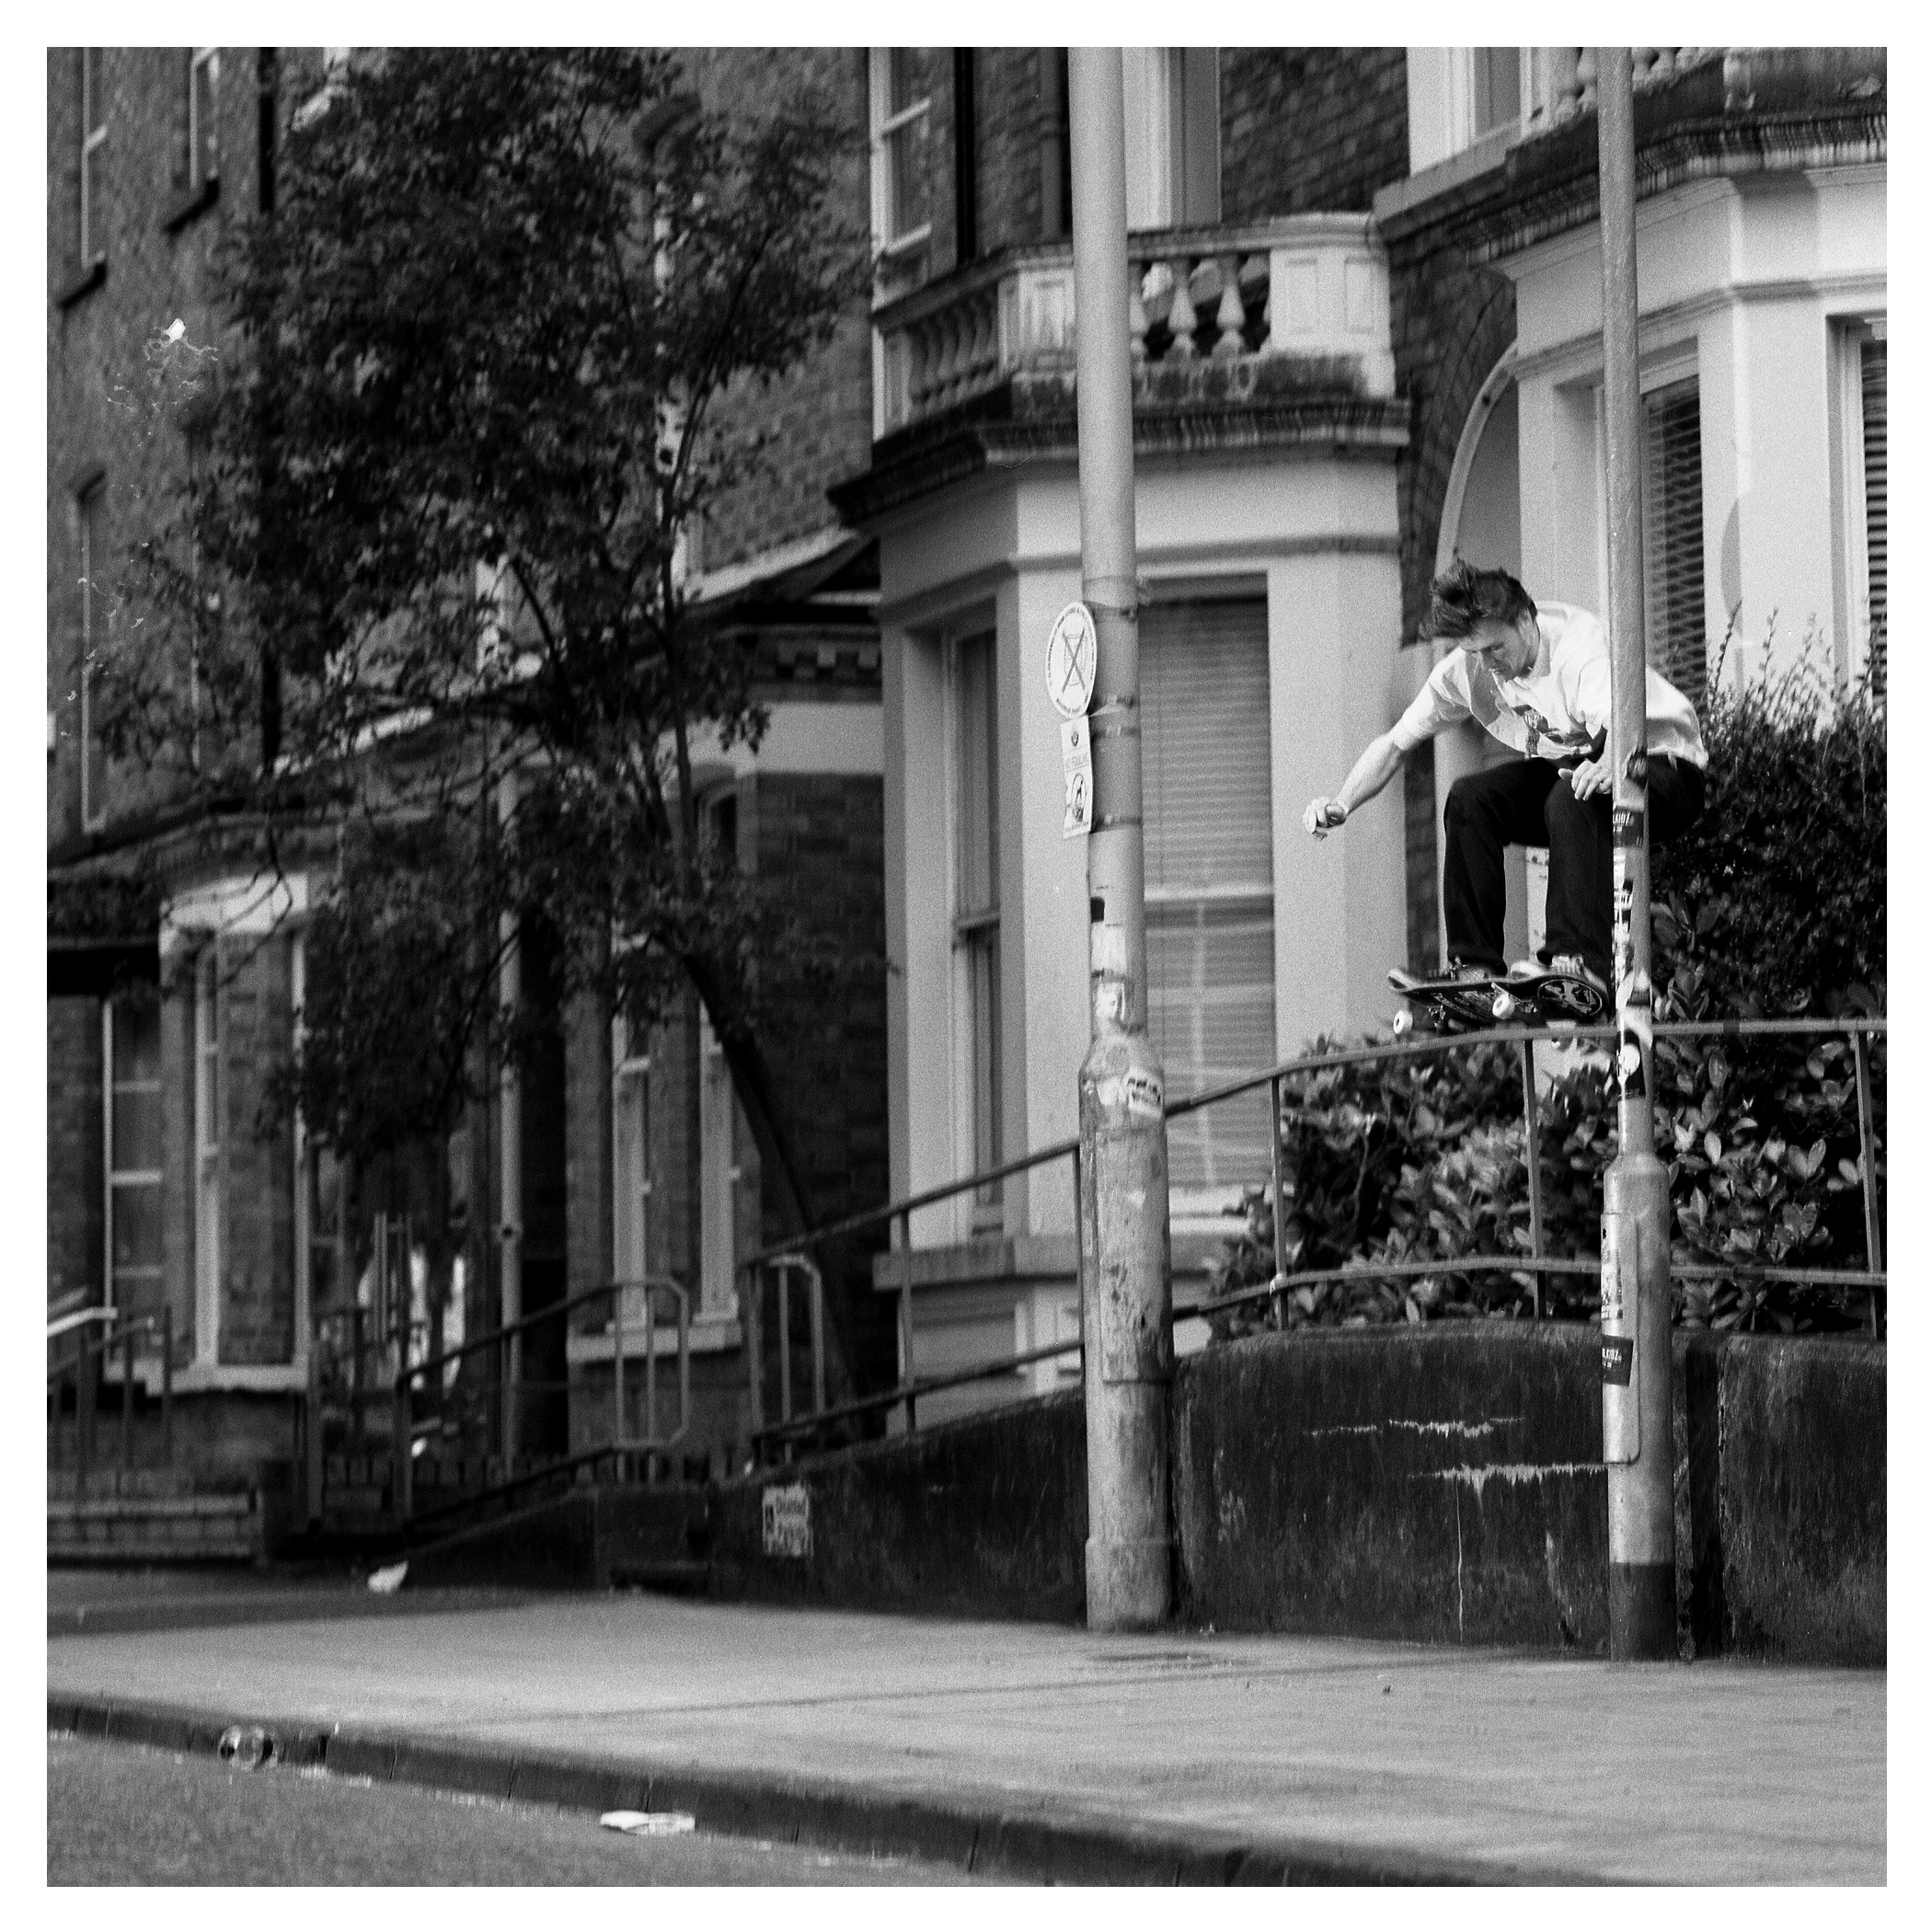 Denis Lynn 5050 - Queens University.  Published in Issue 2 of North Skate Mag.